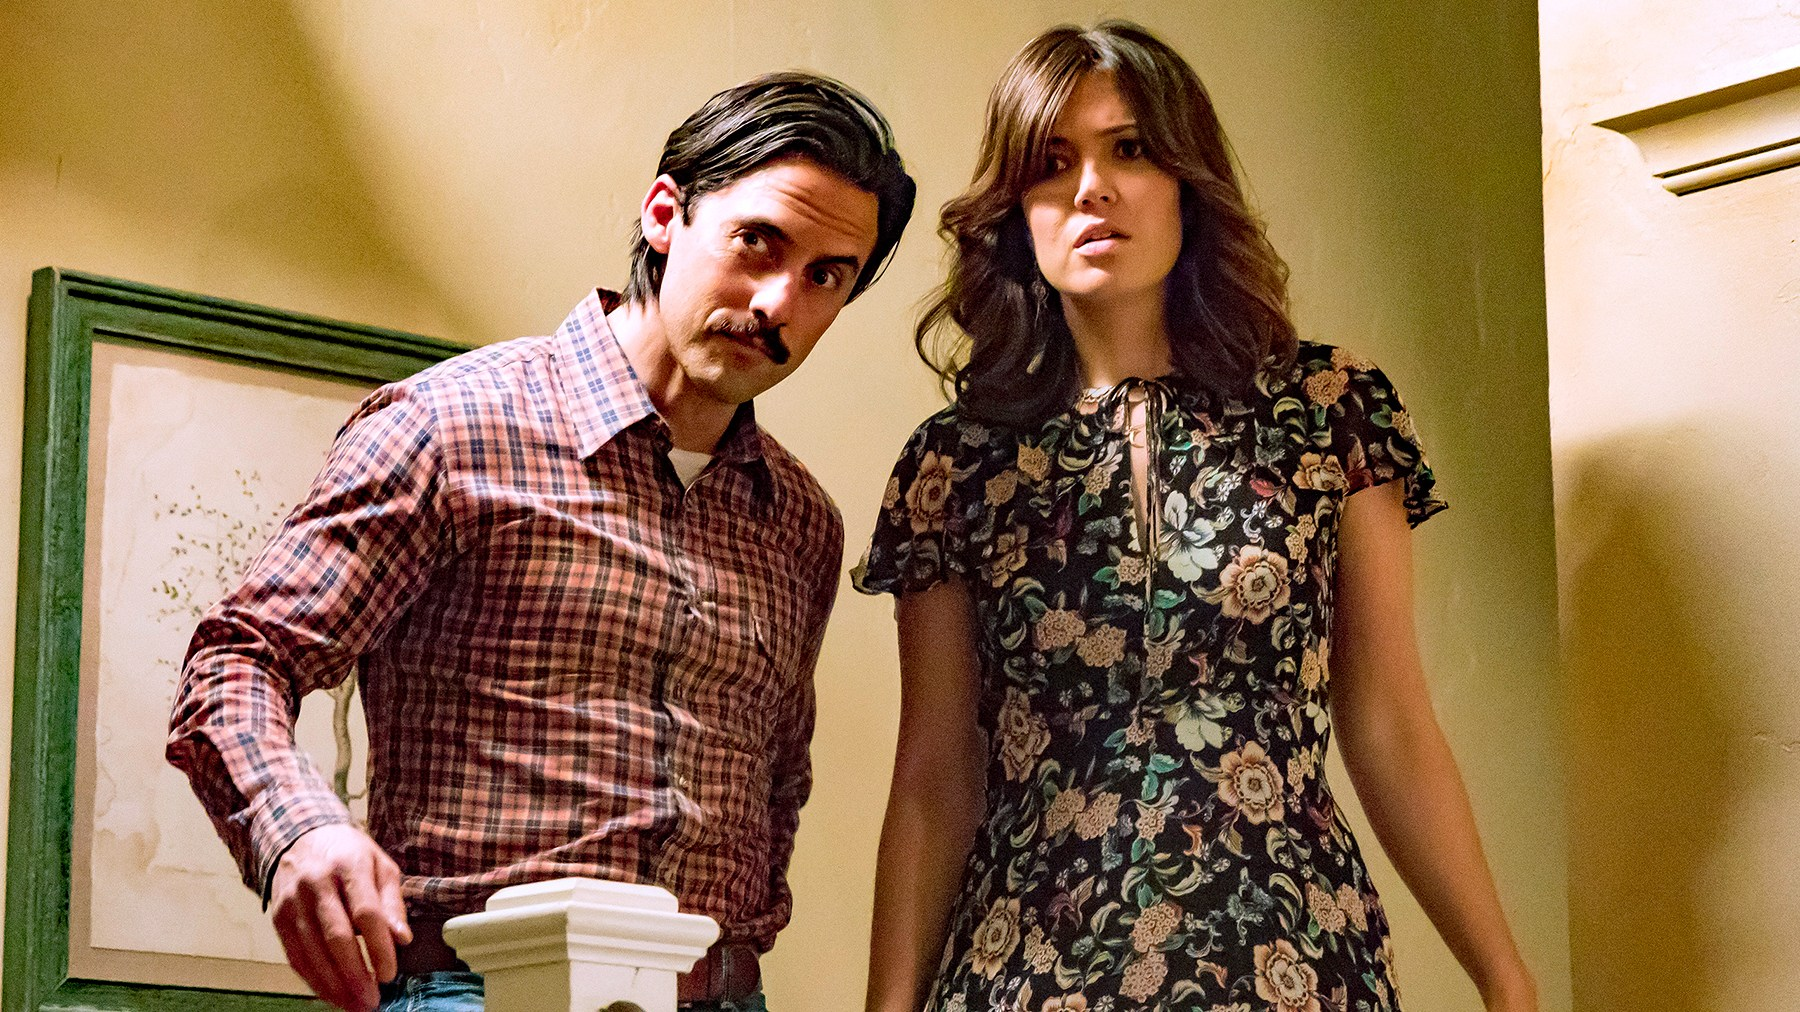 Milo Ventimiglia as Jack Pearson and Mandy Moore as Rebecca Pearson in This Is Us.